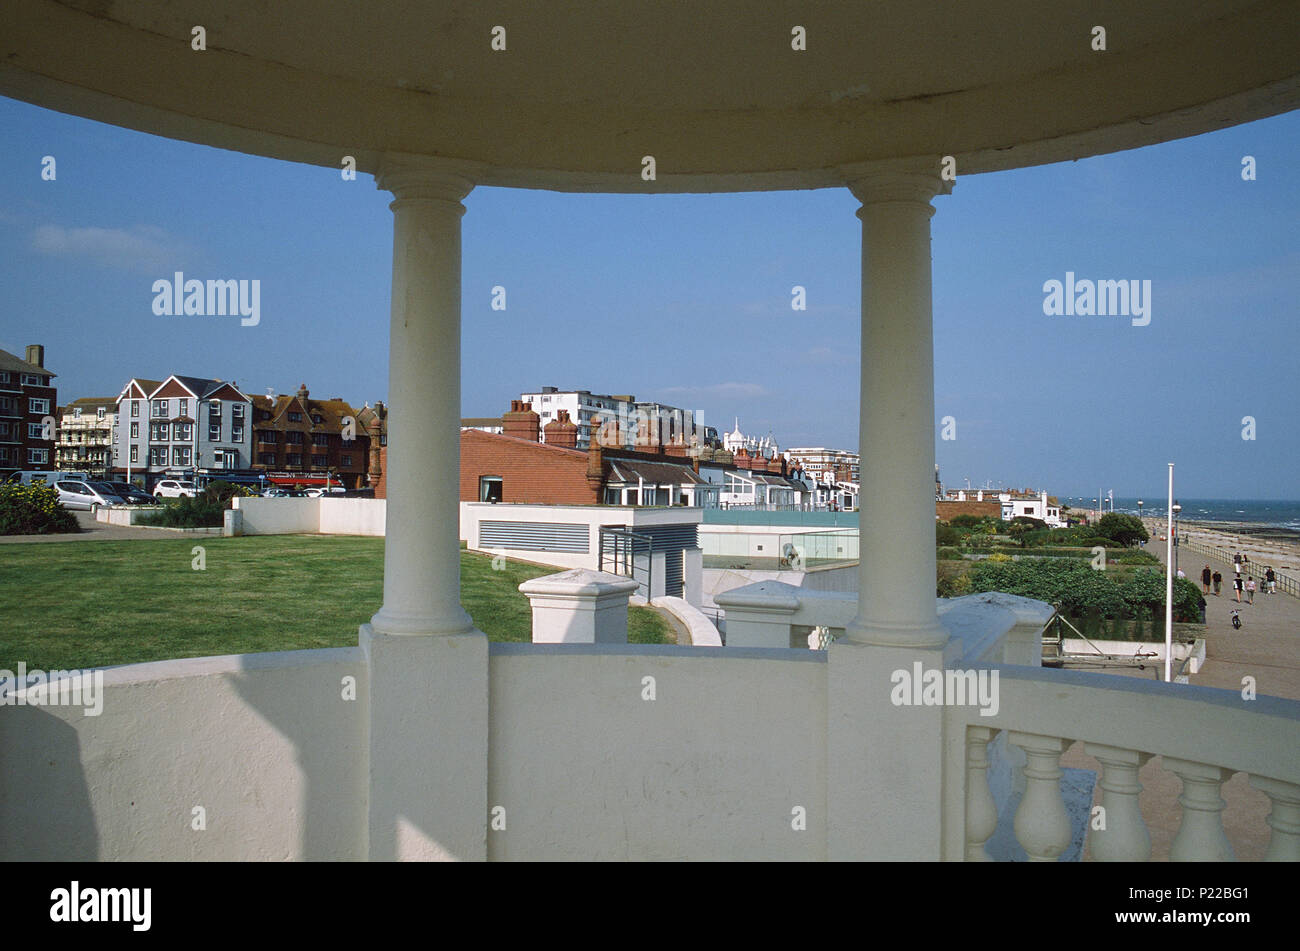 Bexhill seafront - Stock Image